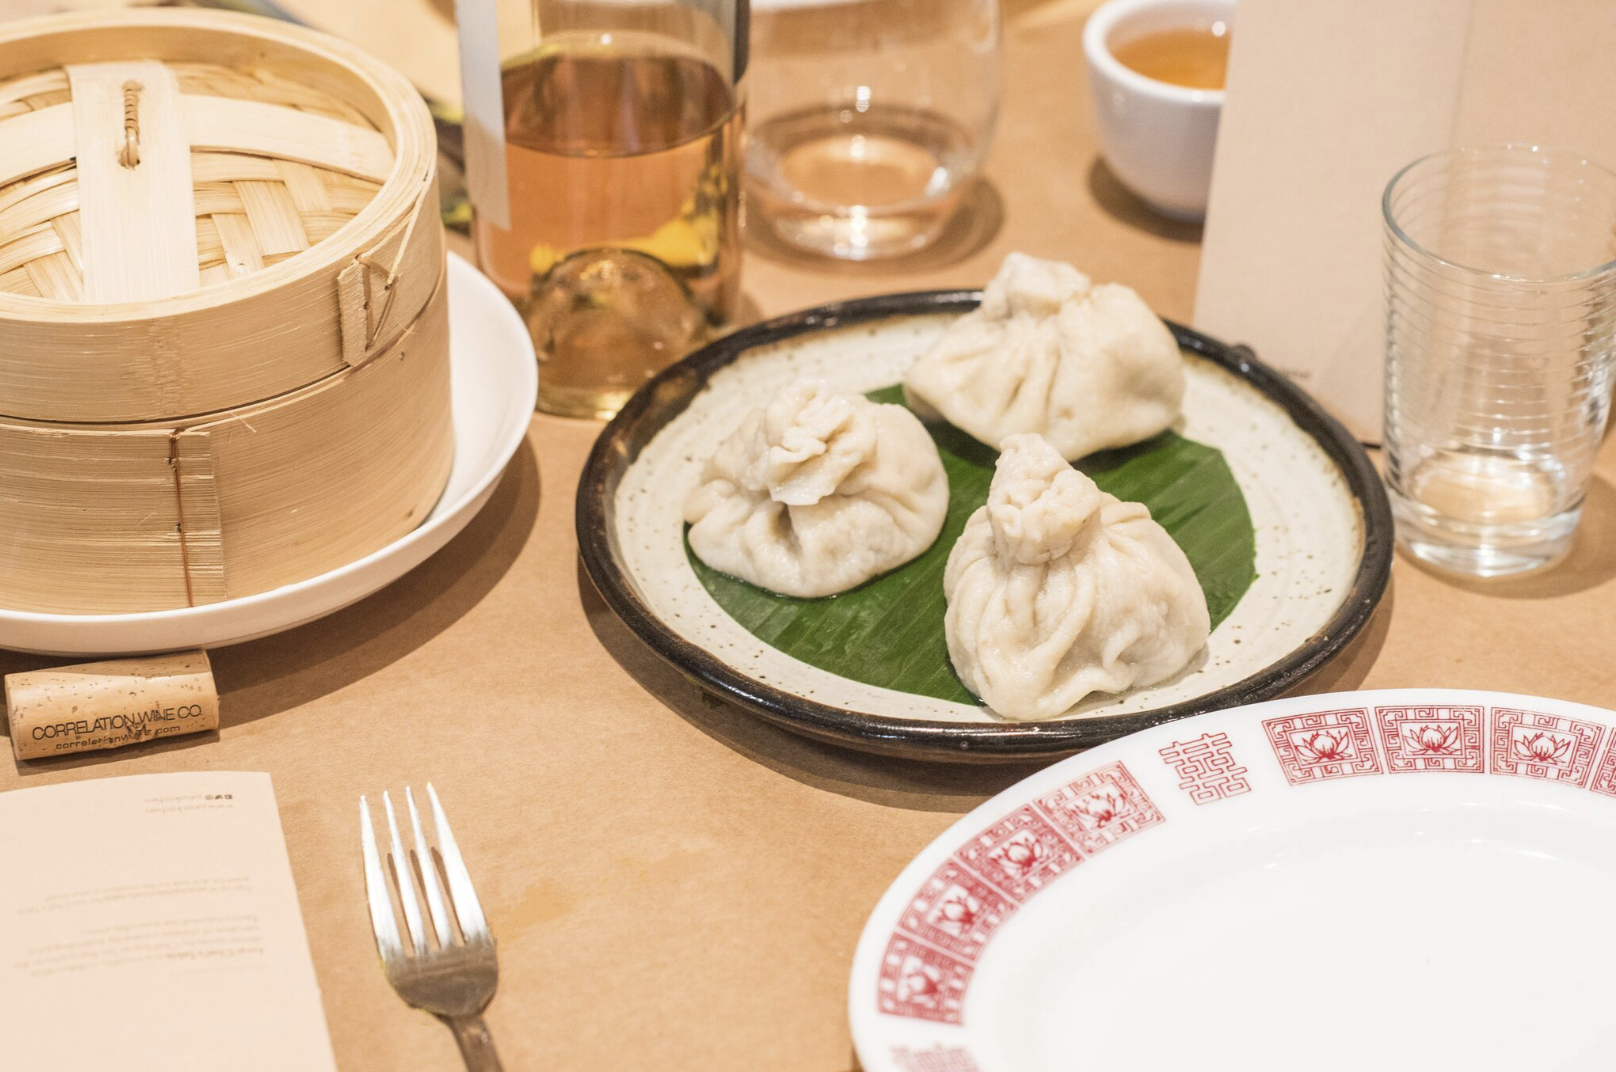 Our third course featured three types of dumplings, inspired by spices and flavors along the silk road.